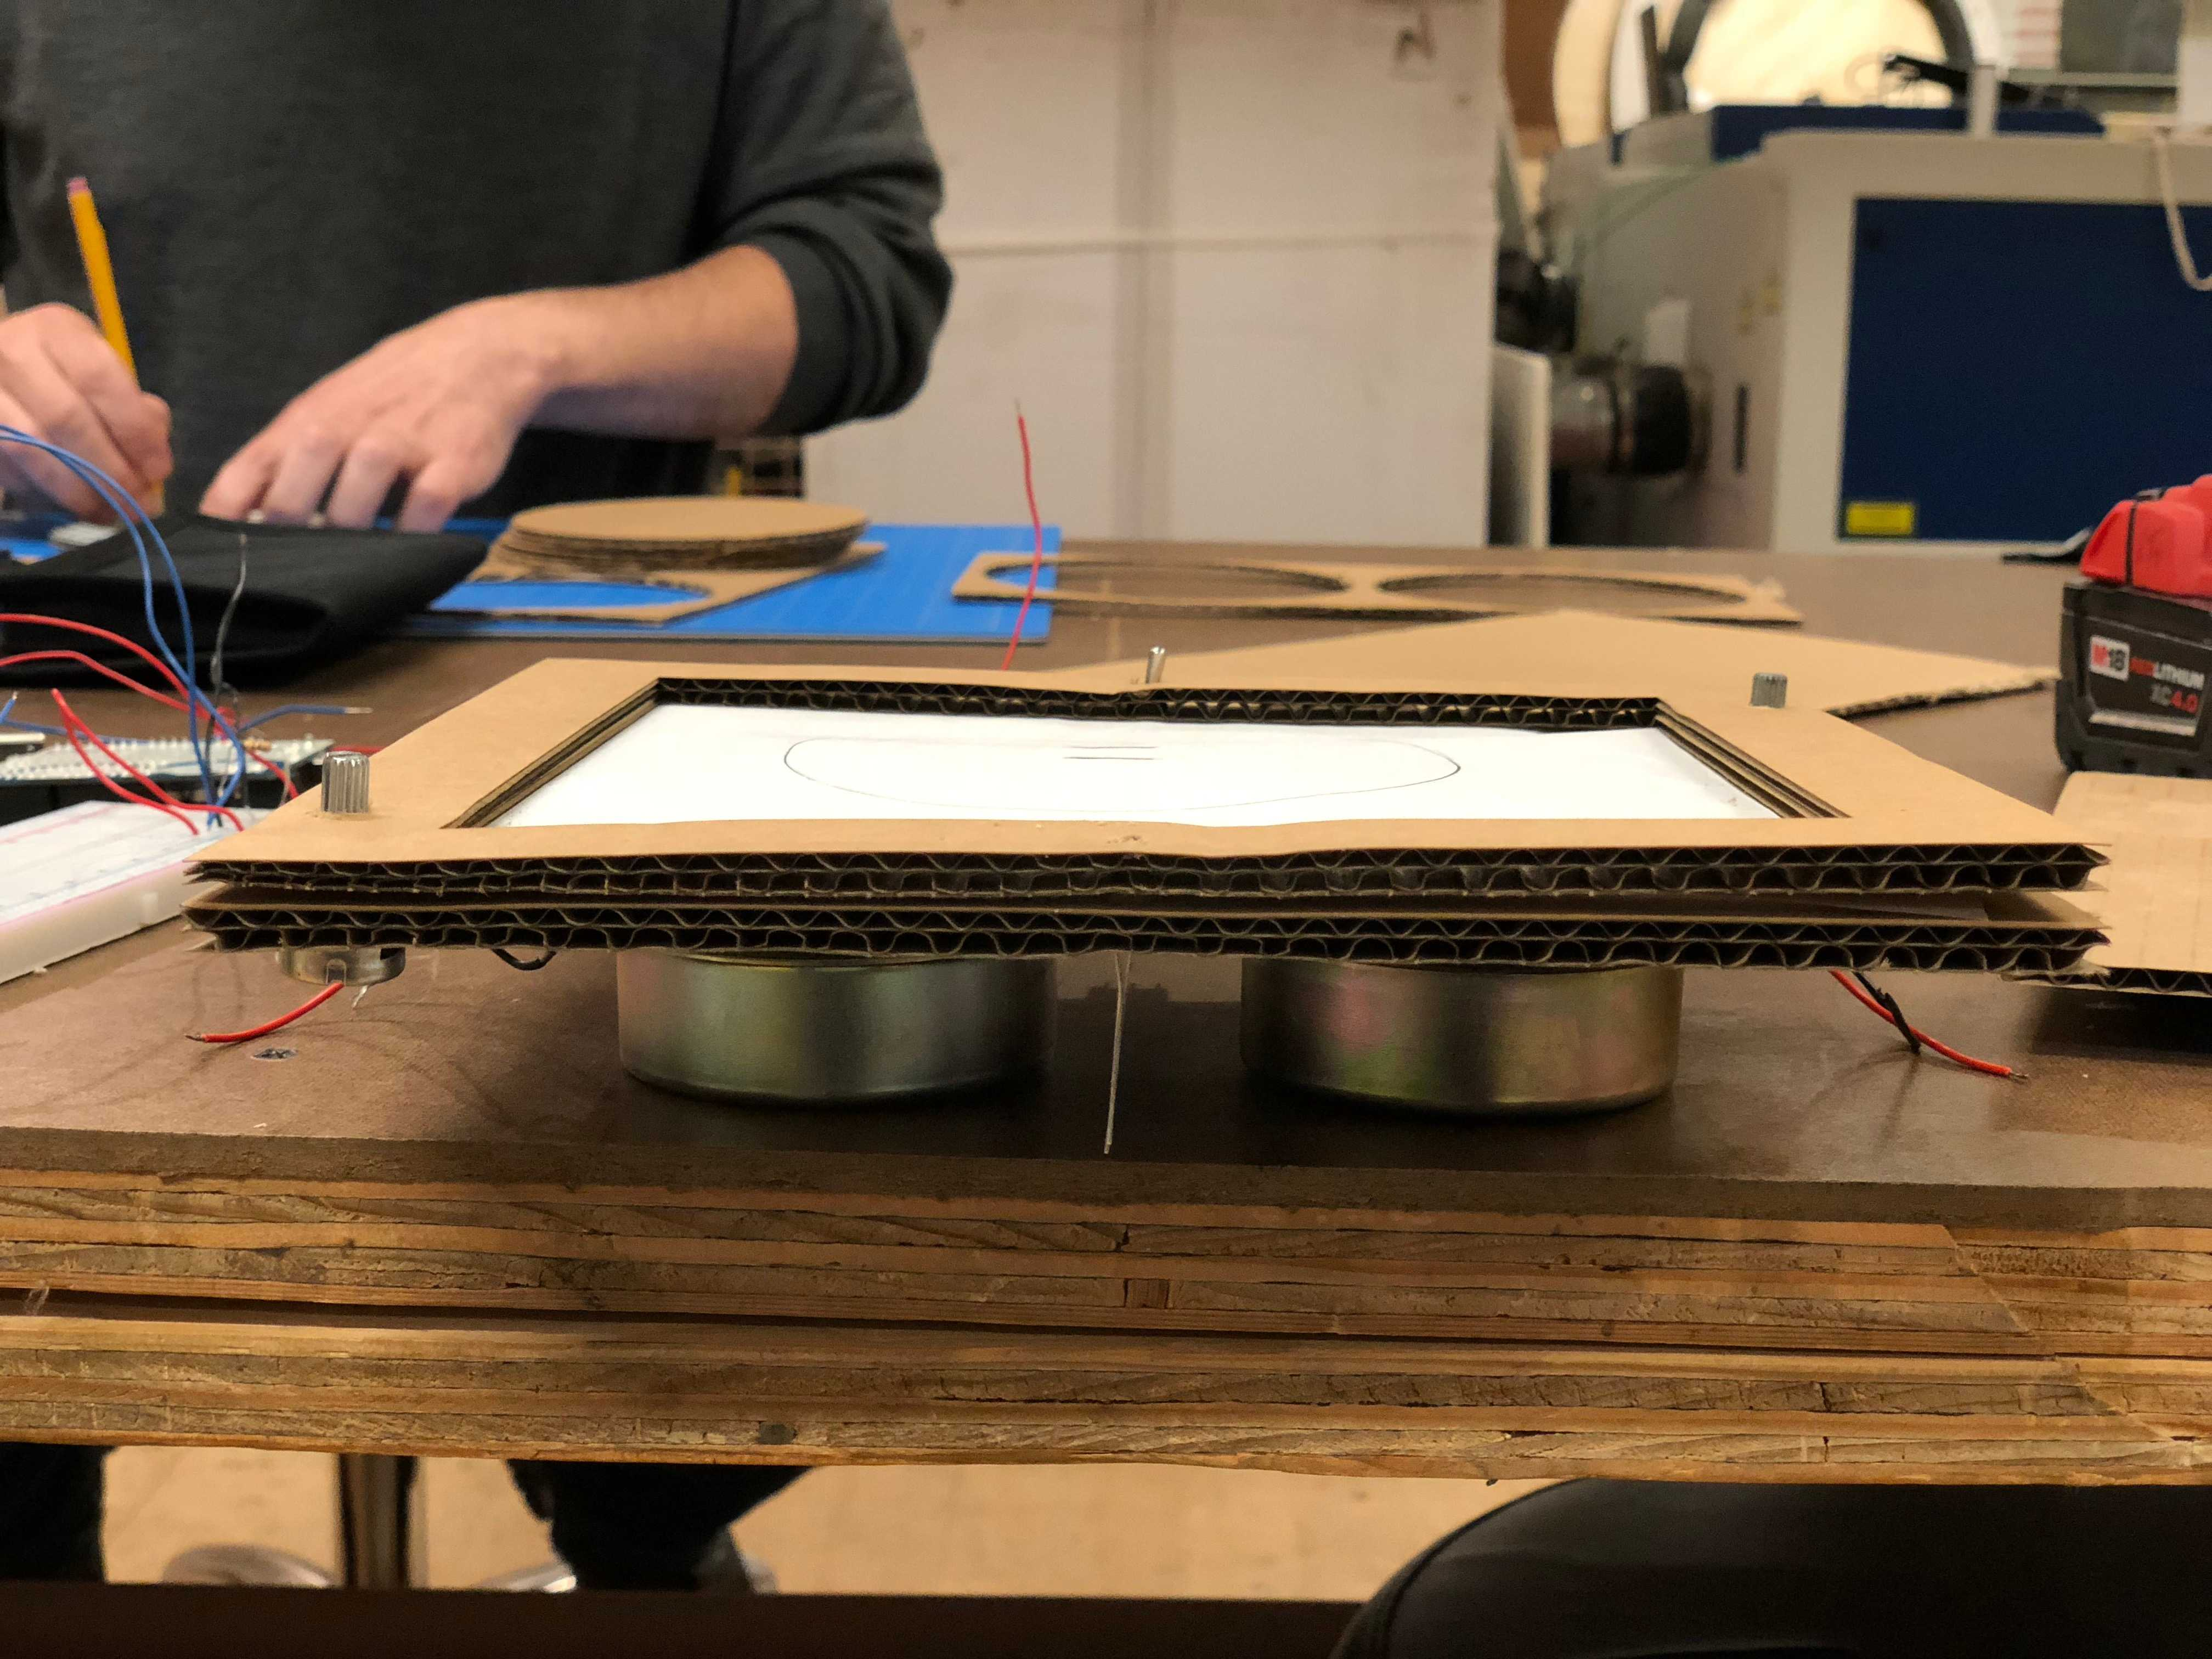 Intro to Fabrication - Week 4 | WIP [ITP Blog]